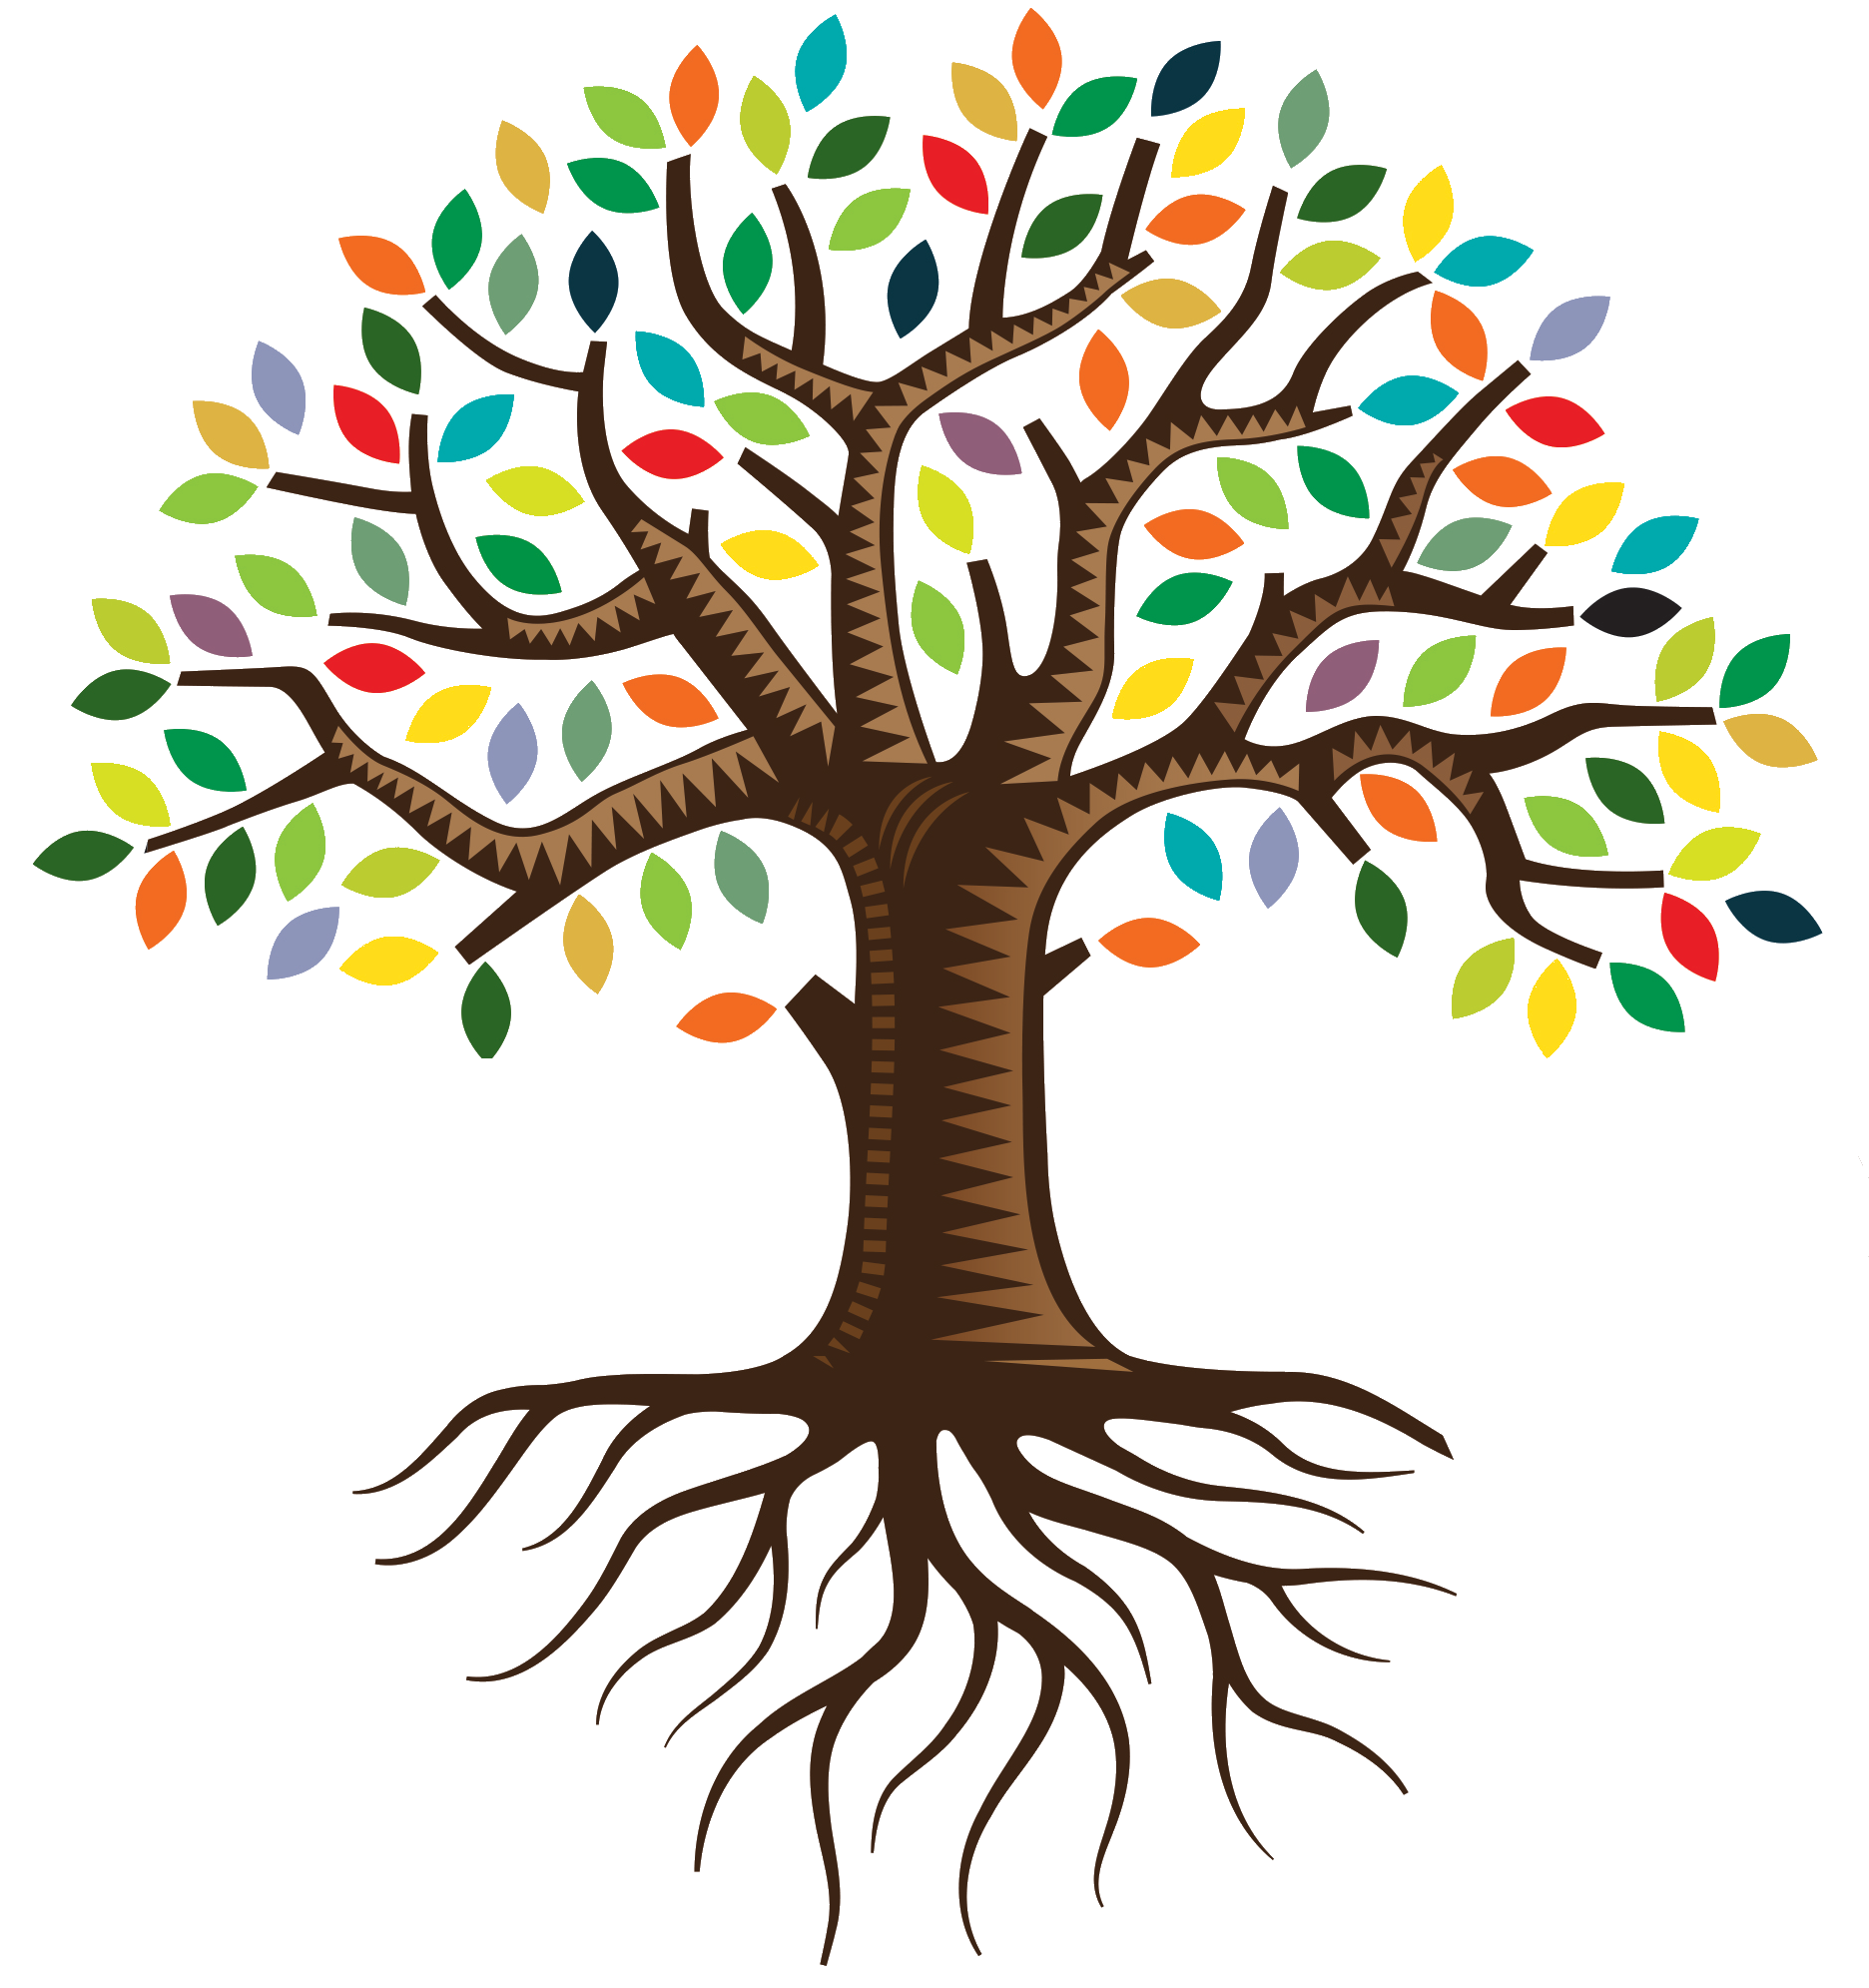 It's just a picture of Agile Family Tree Graphic